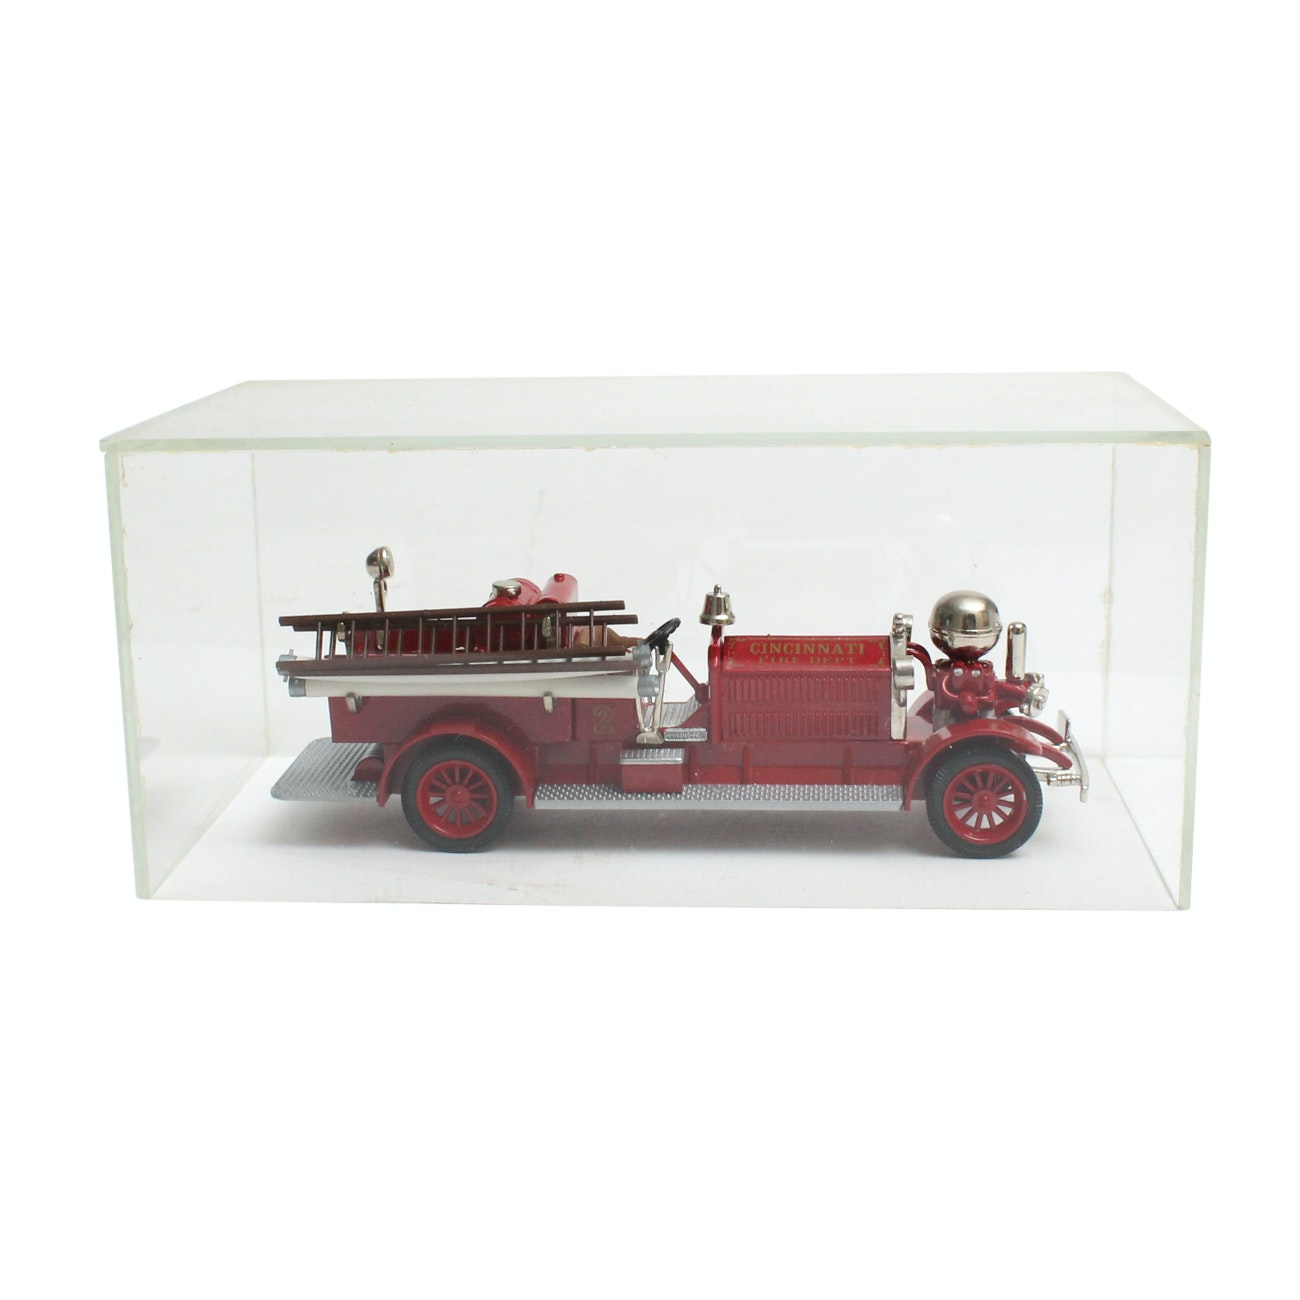 "Ashton Models Ahrens-Fox 1921 ""Cincinnati"" Fire Truck Model J"